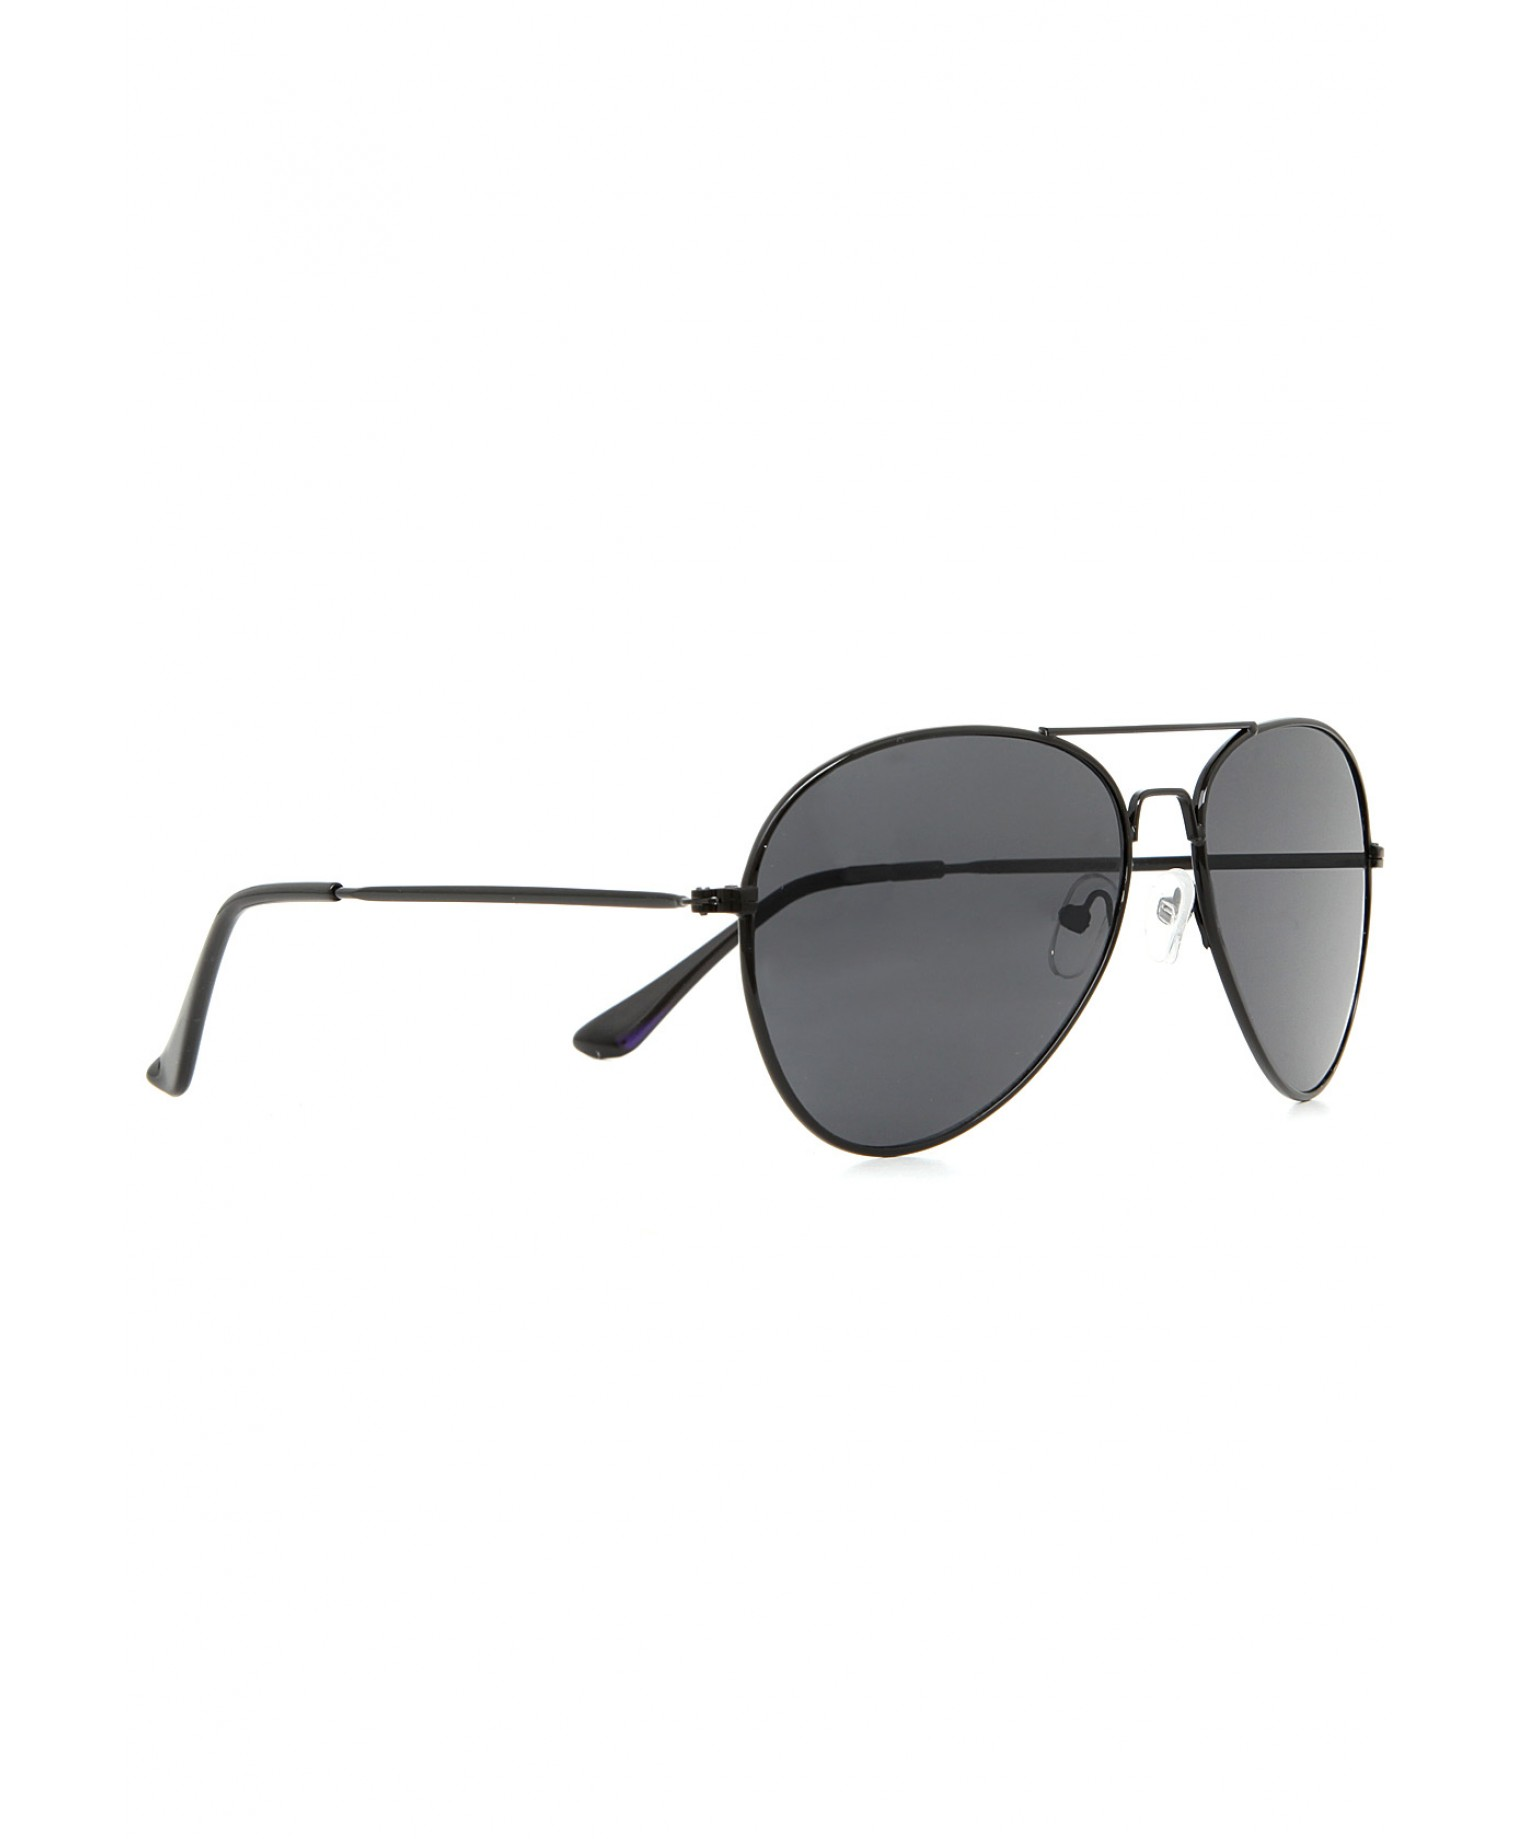 Elma aviator sunglasses 3